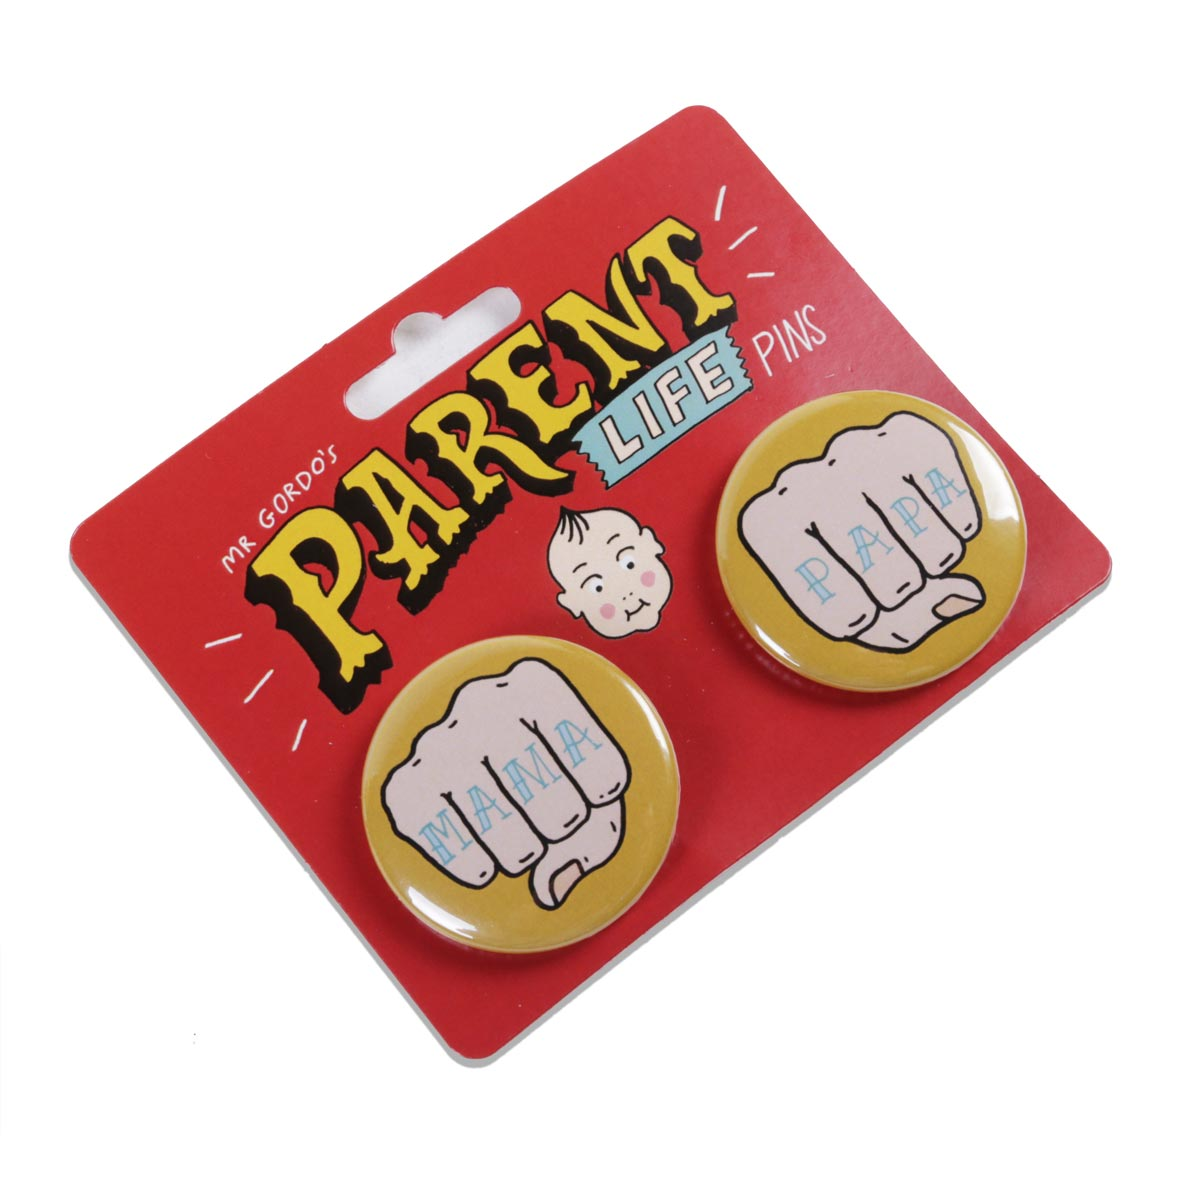 Two x 38mm Badge Packs